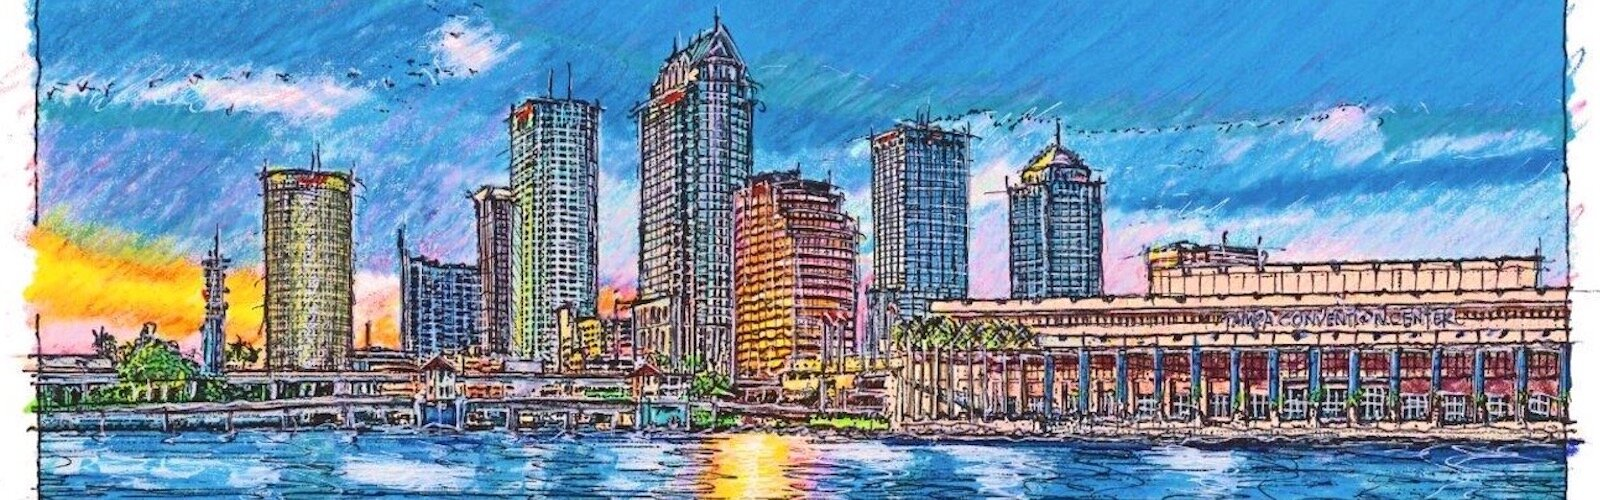 Downtown Tampa skyline sketched by John Pehling.